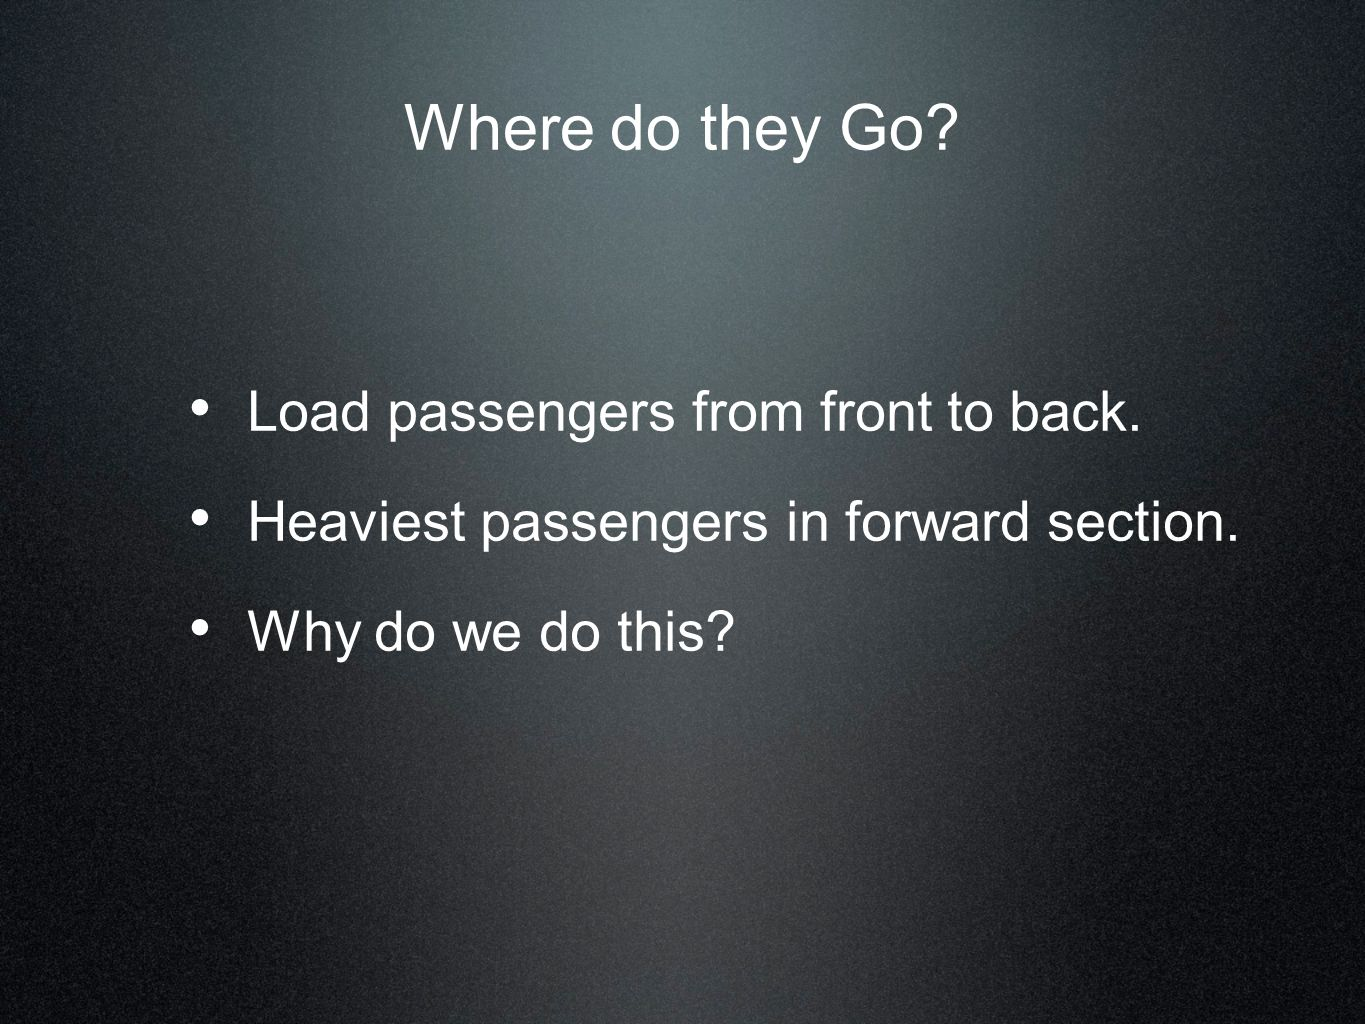 Where do they Go? Load passengers from front to back. Heaviest passengers in forward section. Why do we do this?